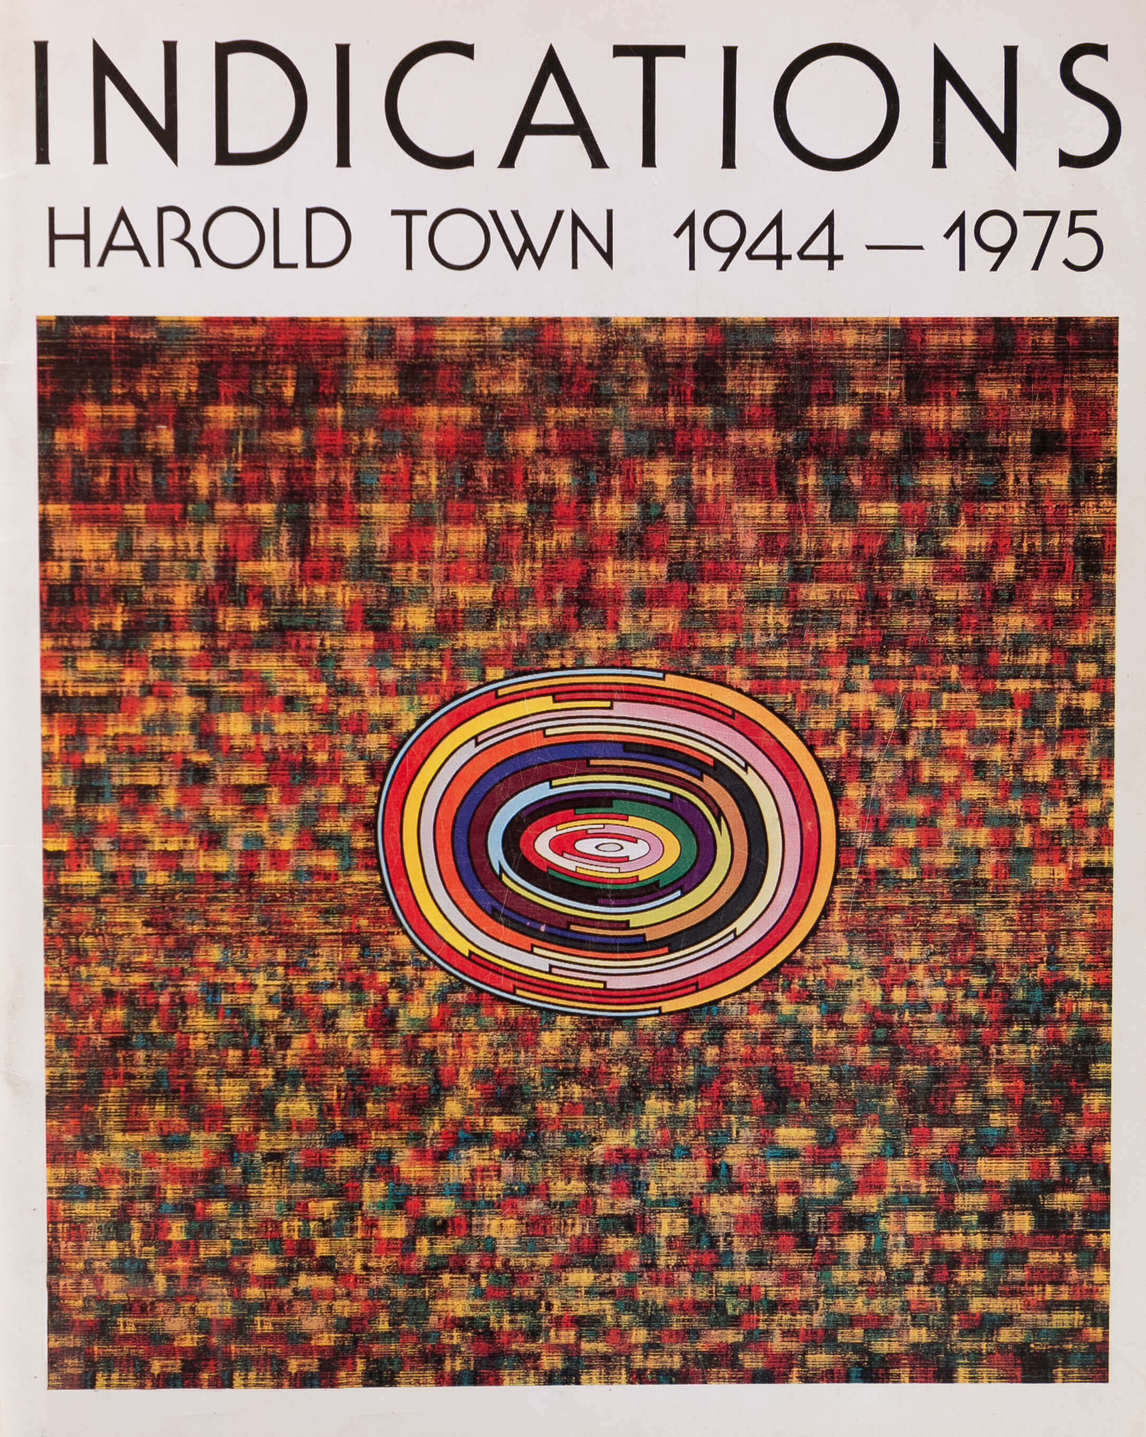 Art Canada Institute, Catalogue for the 1975 exhibition Indications: Harold Town, 1944–1975 at the Art Gallery of Windsor